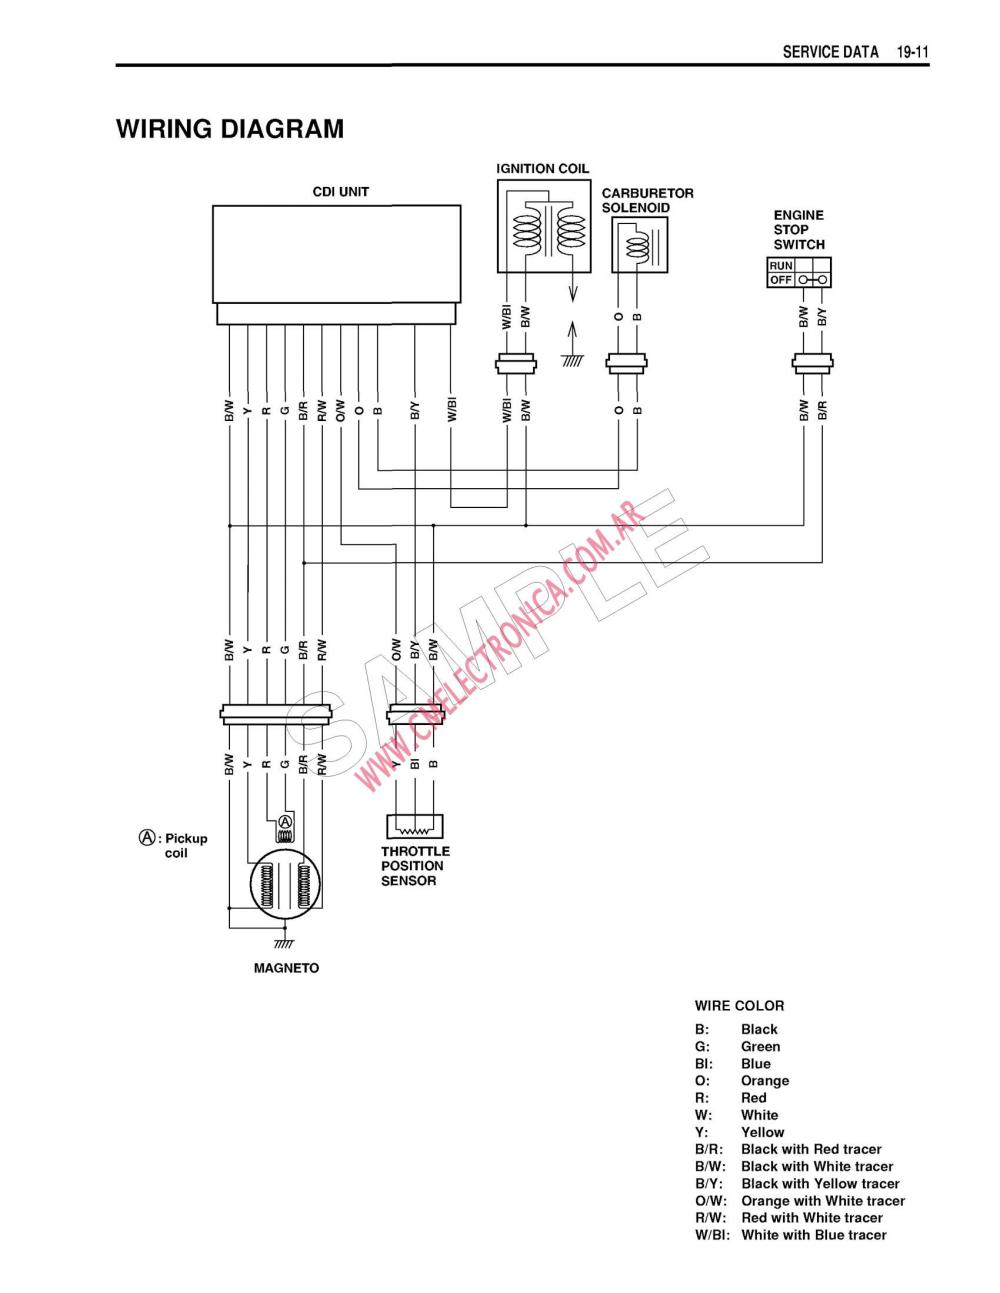 medium resolution of 1996 suzuki intruder 1400 wiring schematic wiring diagram1996 suzuki intruder 1400 wiring schematic